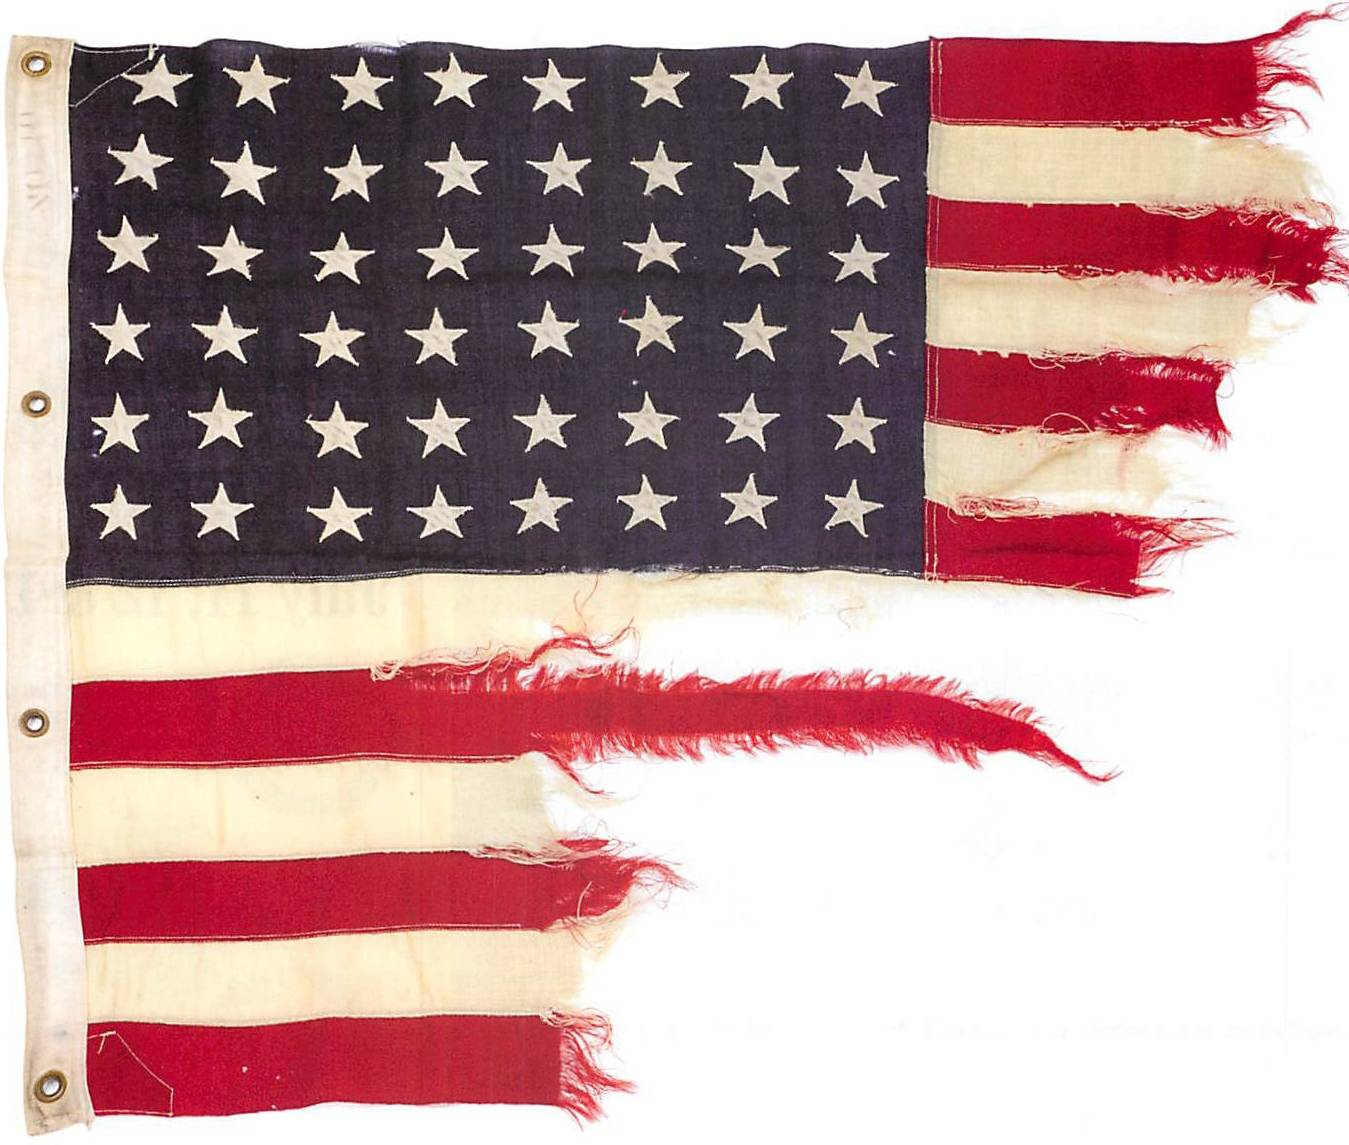 D-Day ship's U.S. flag sells for $350,000 at auction